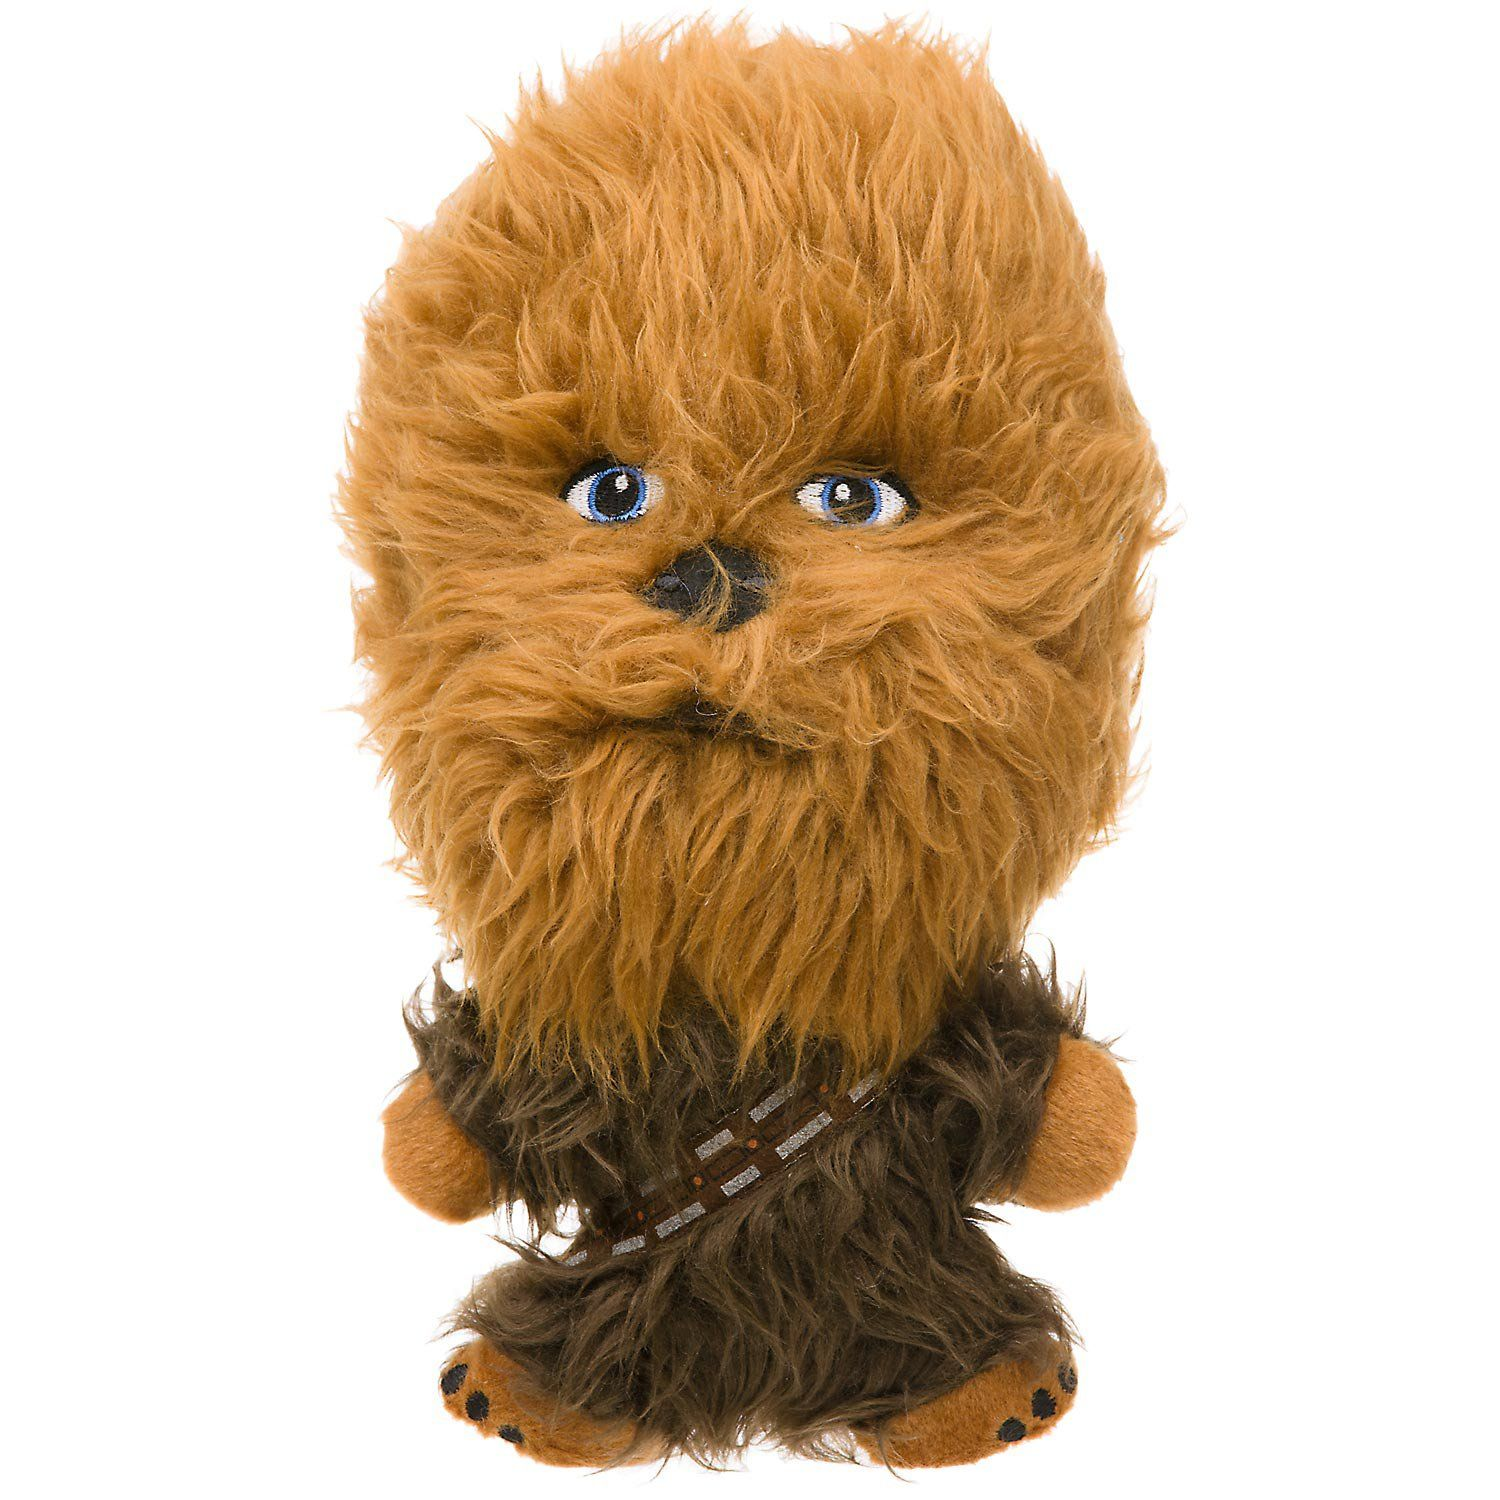 STAR WARS Chewbacca Plush Dog Toy Big head dog toy es with a